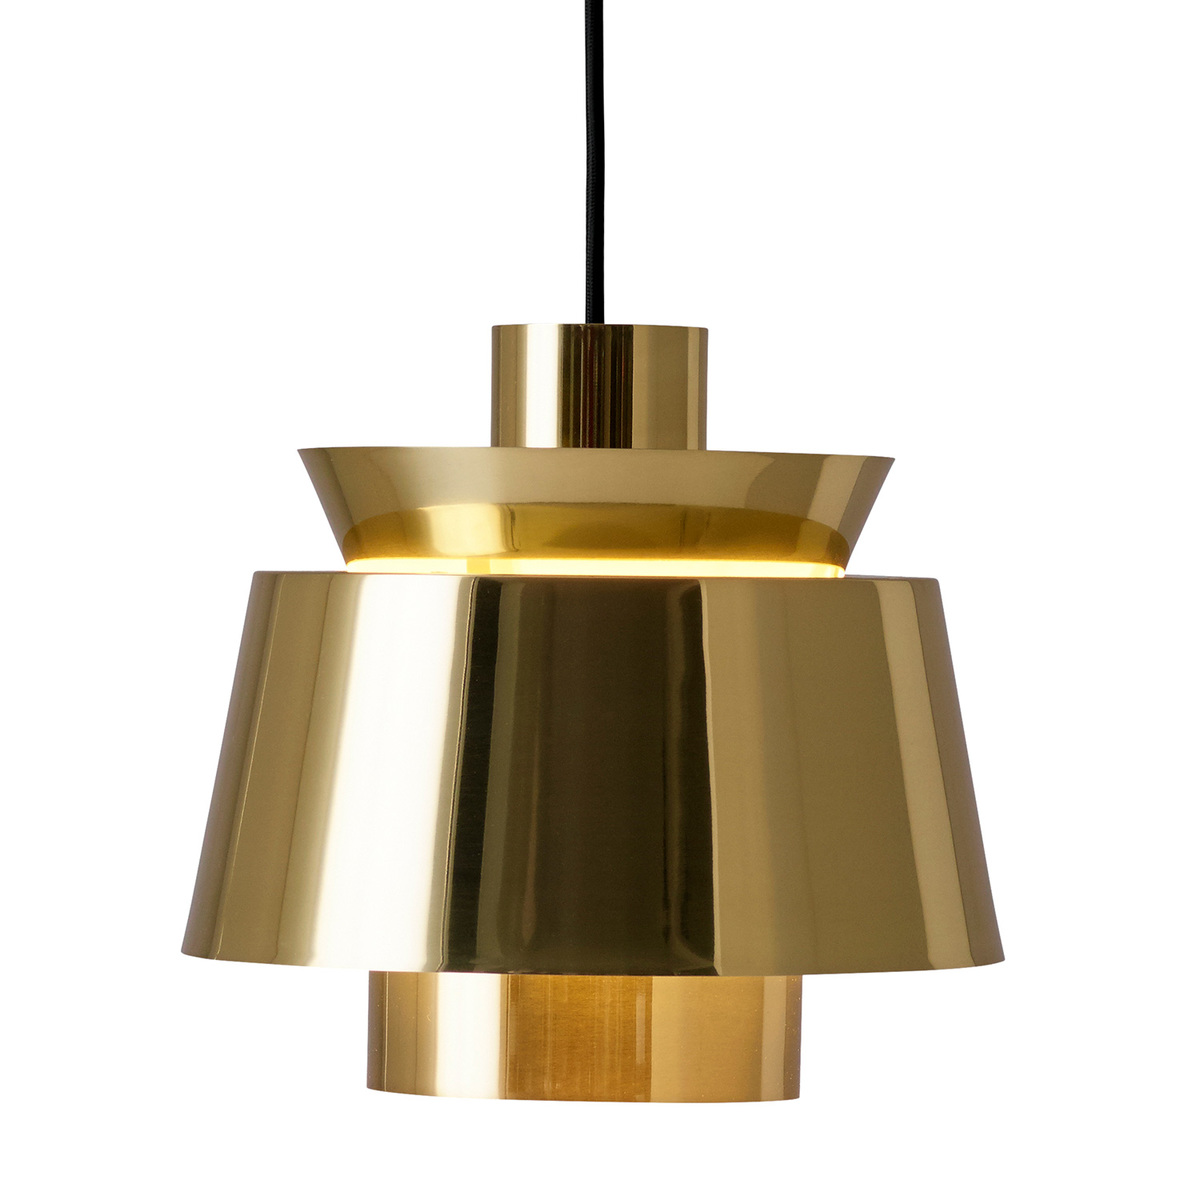 &Tradition Utzon JU1 pendant light, brass from &Tradition